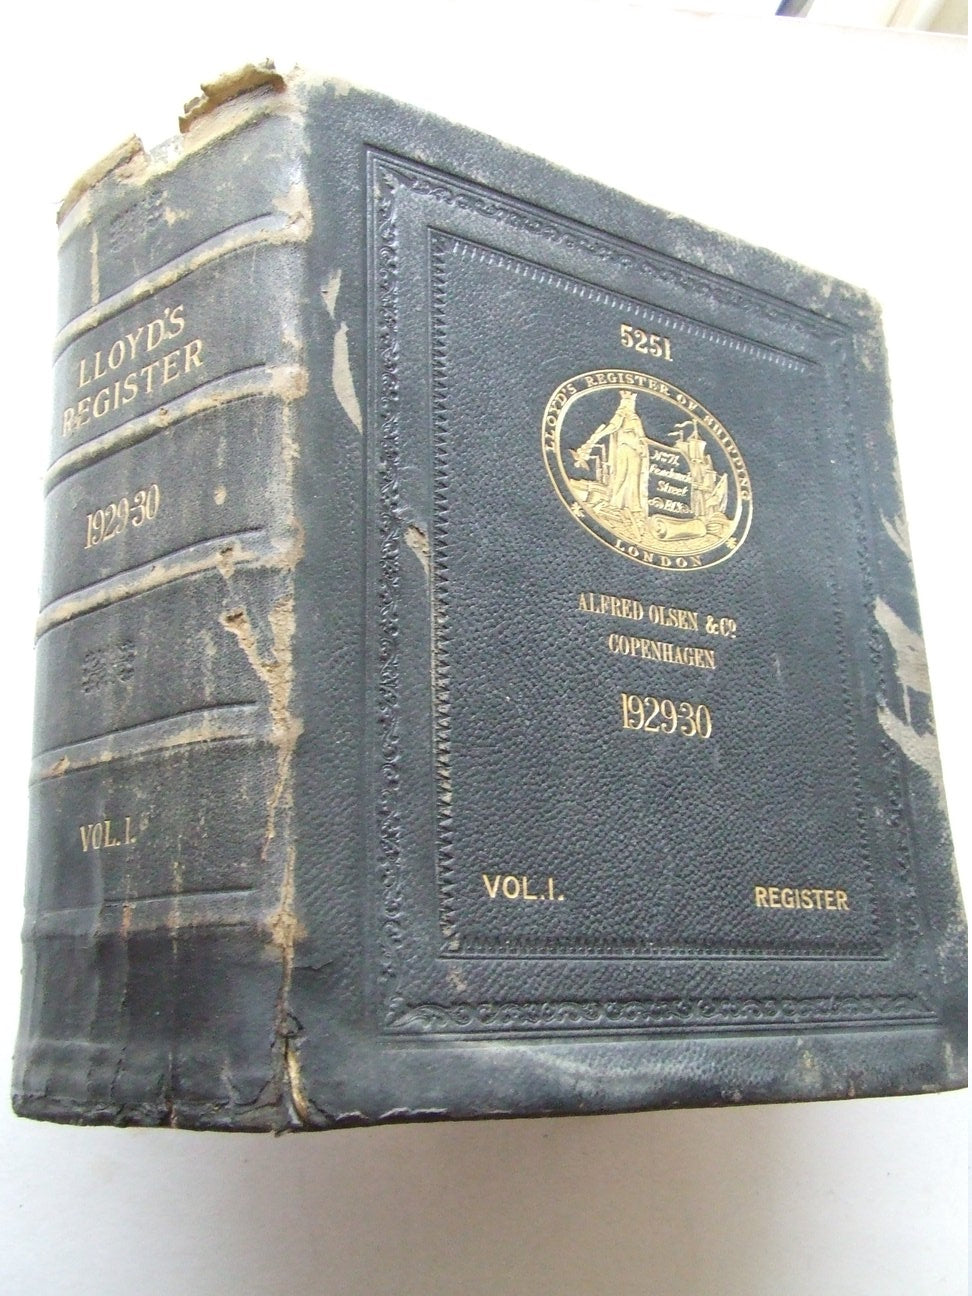 Lloyd's Register of Shipping....from 1st July 1929 to 30th June 1930